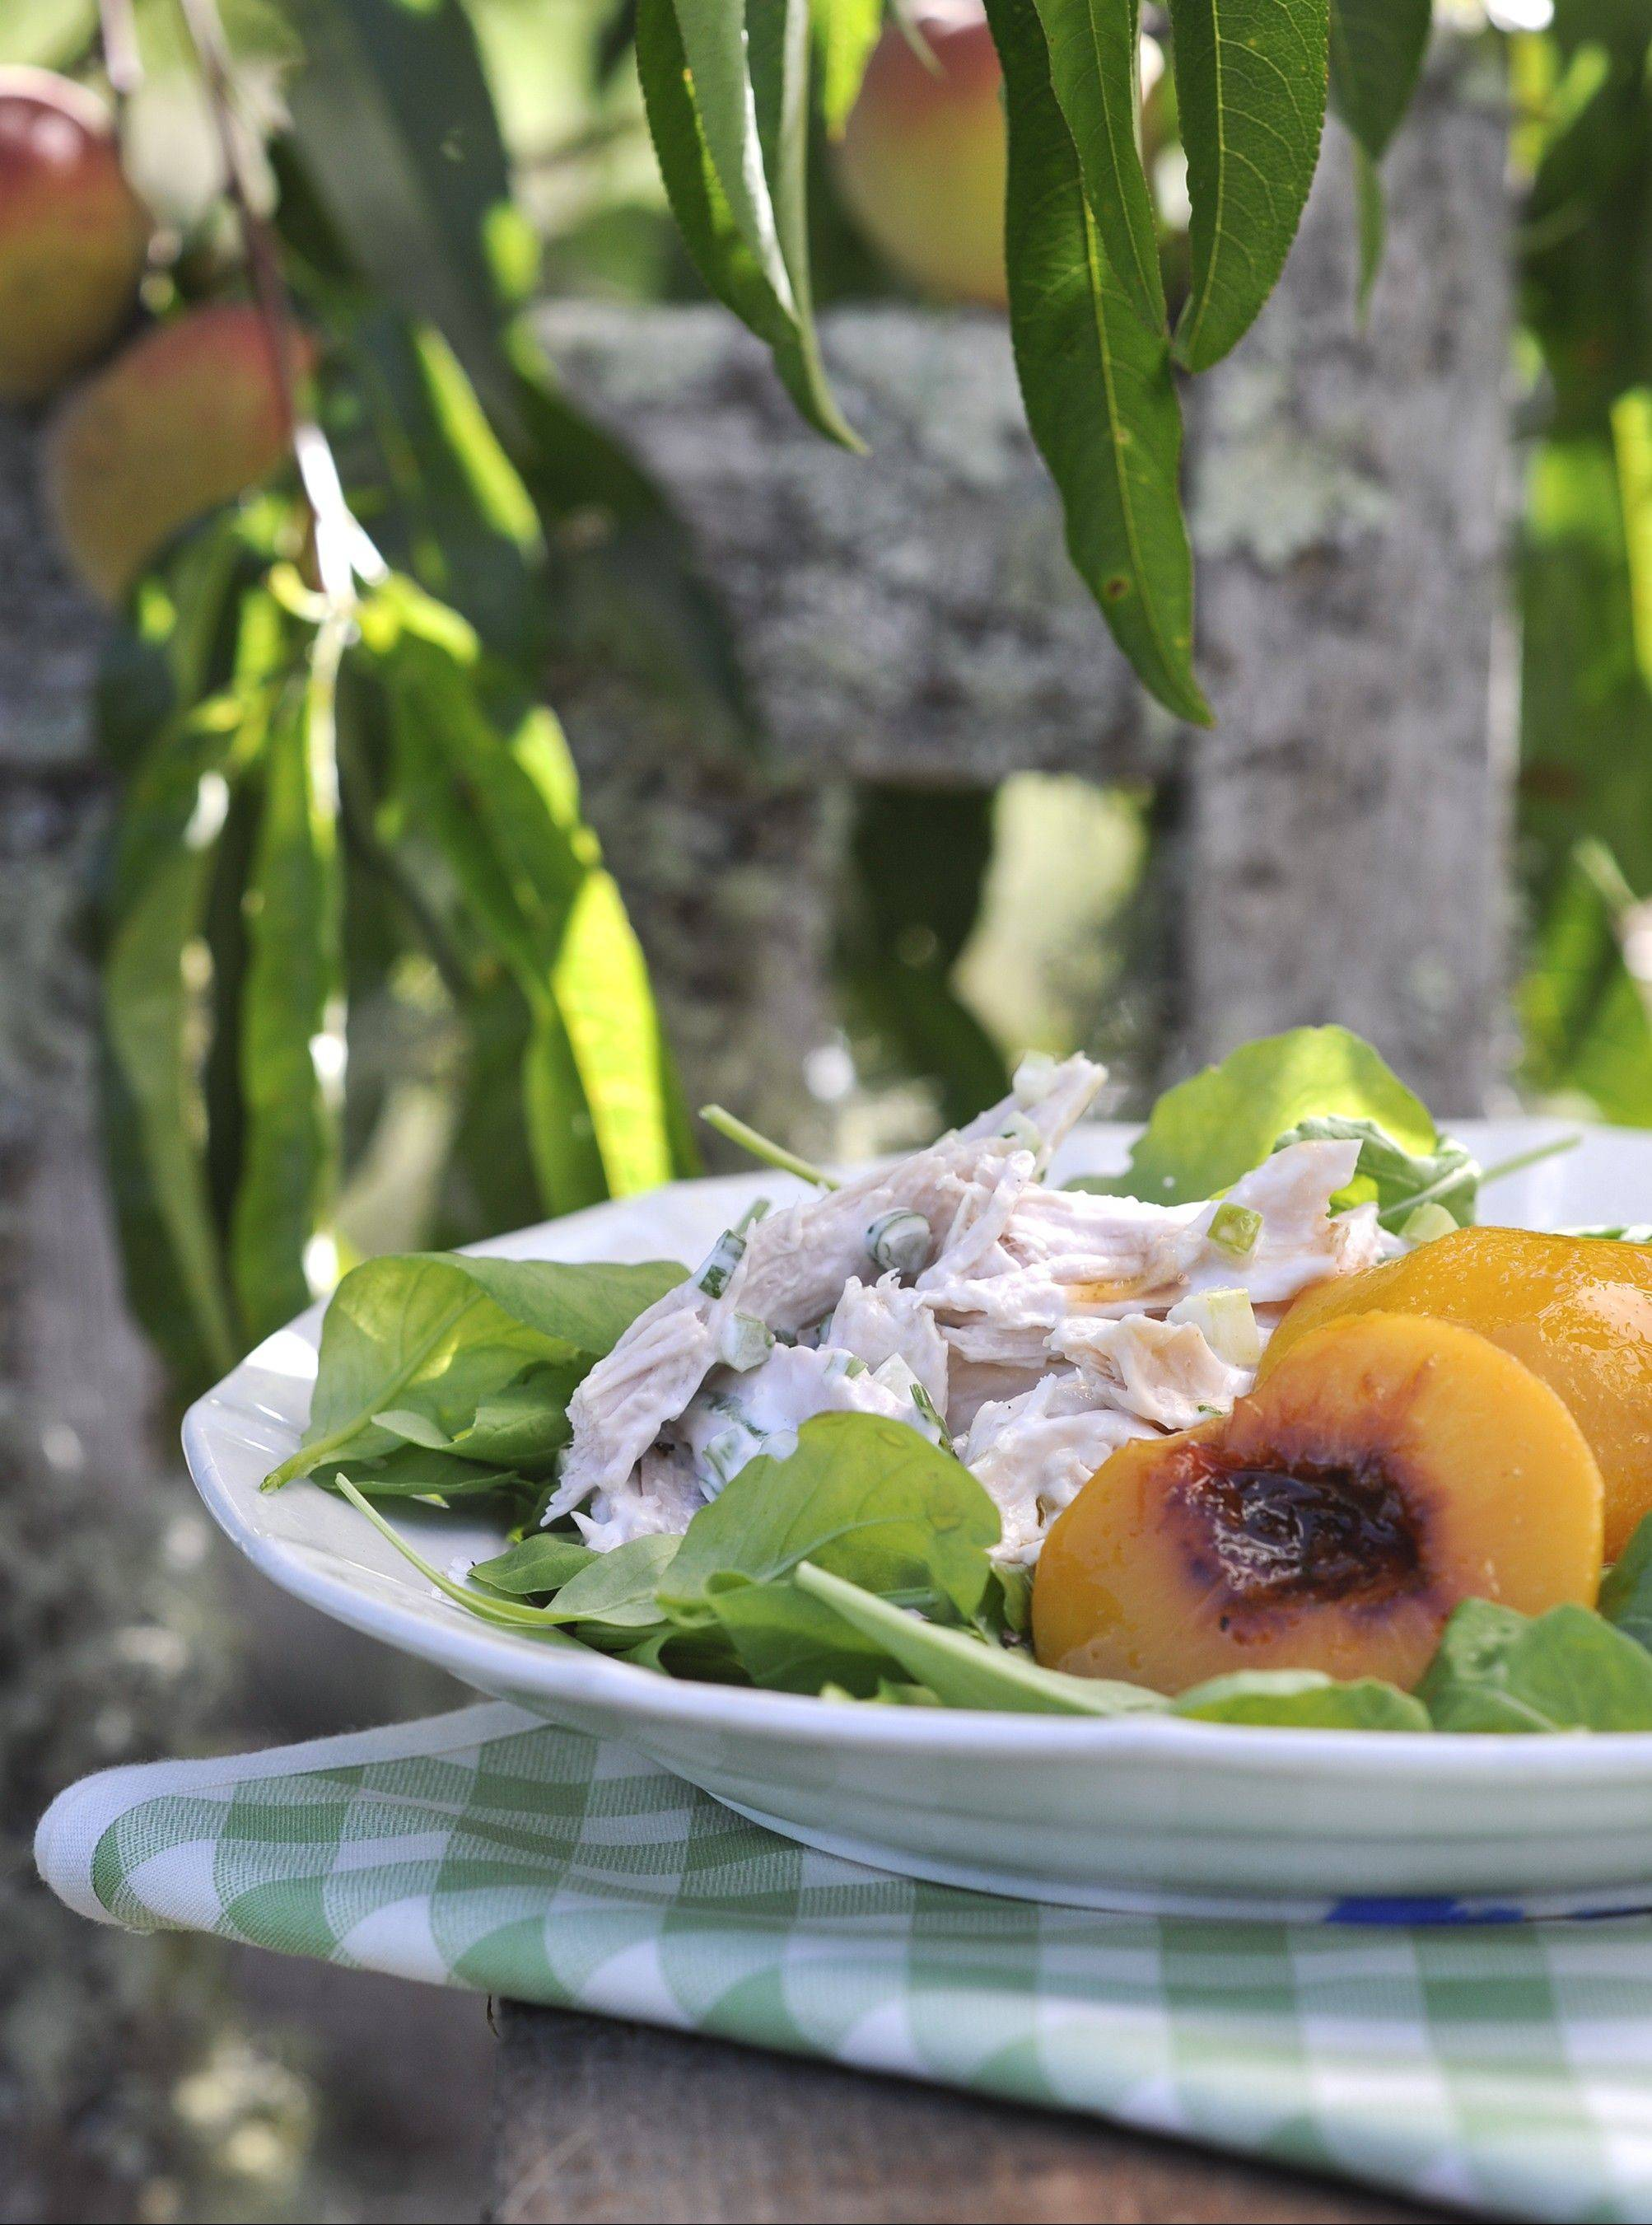 Spiced peaches brighten up chicken salad.